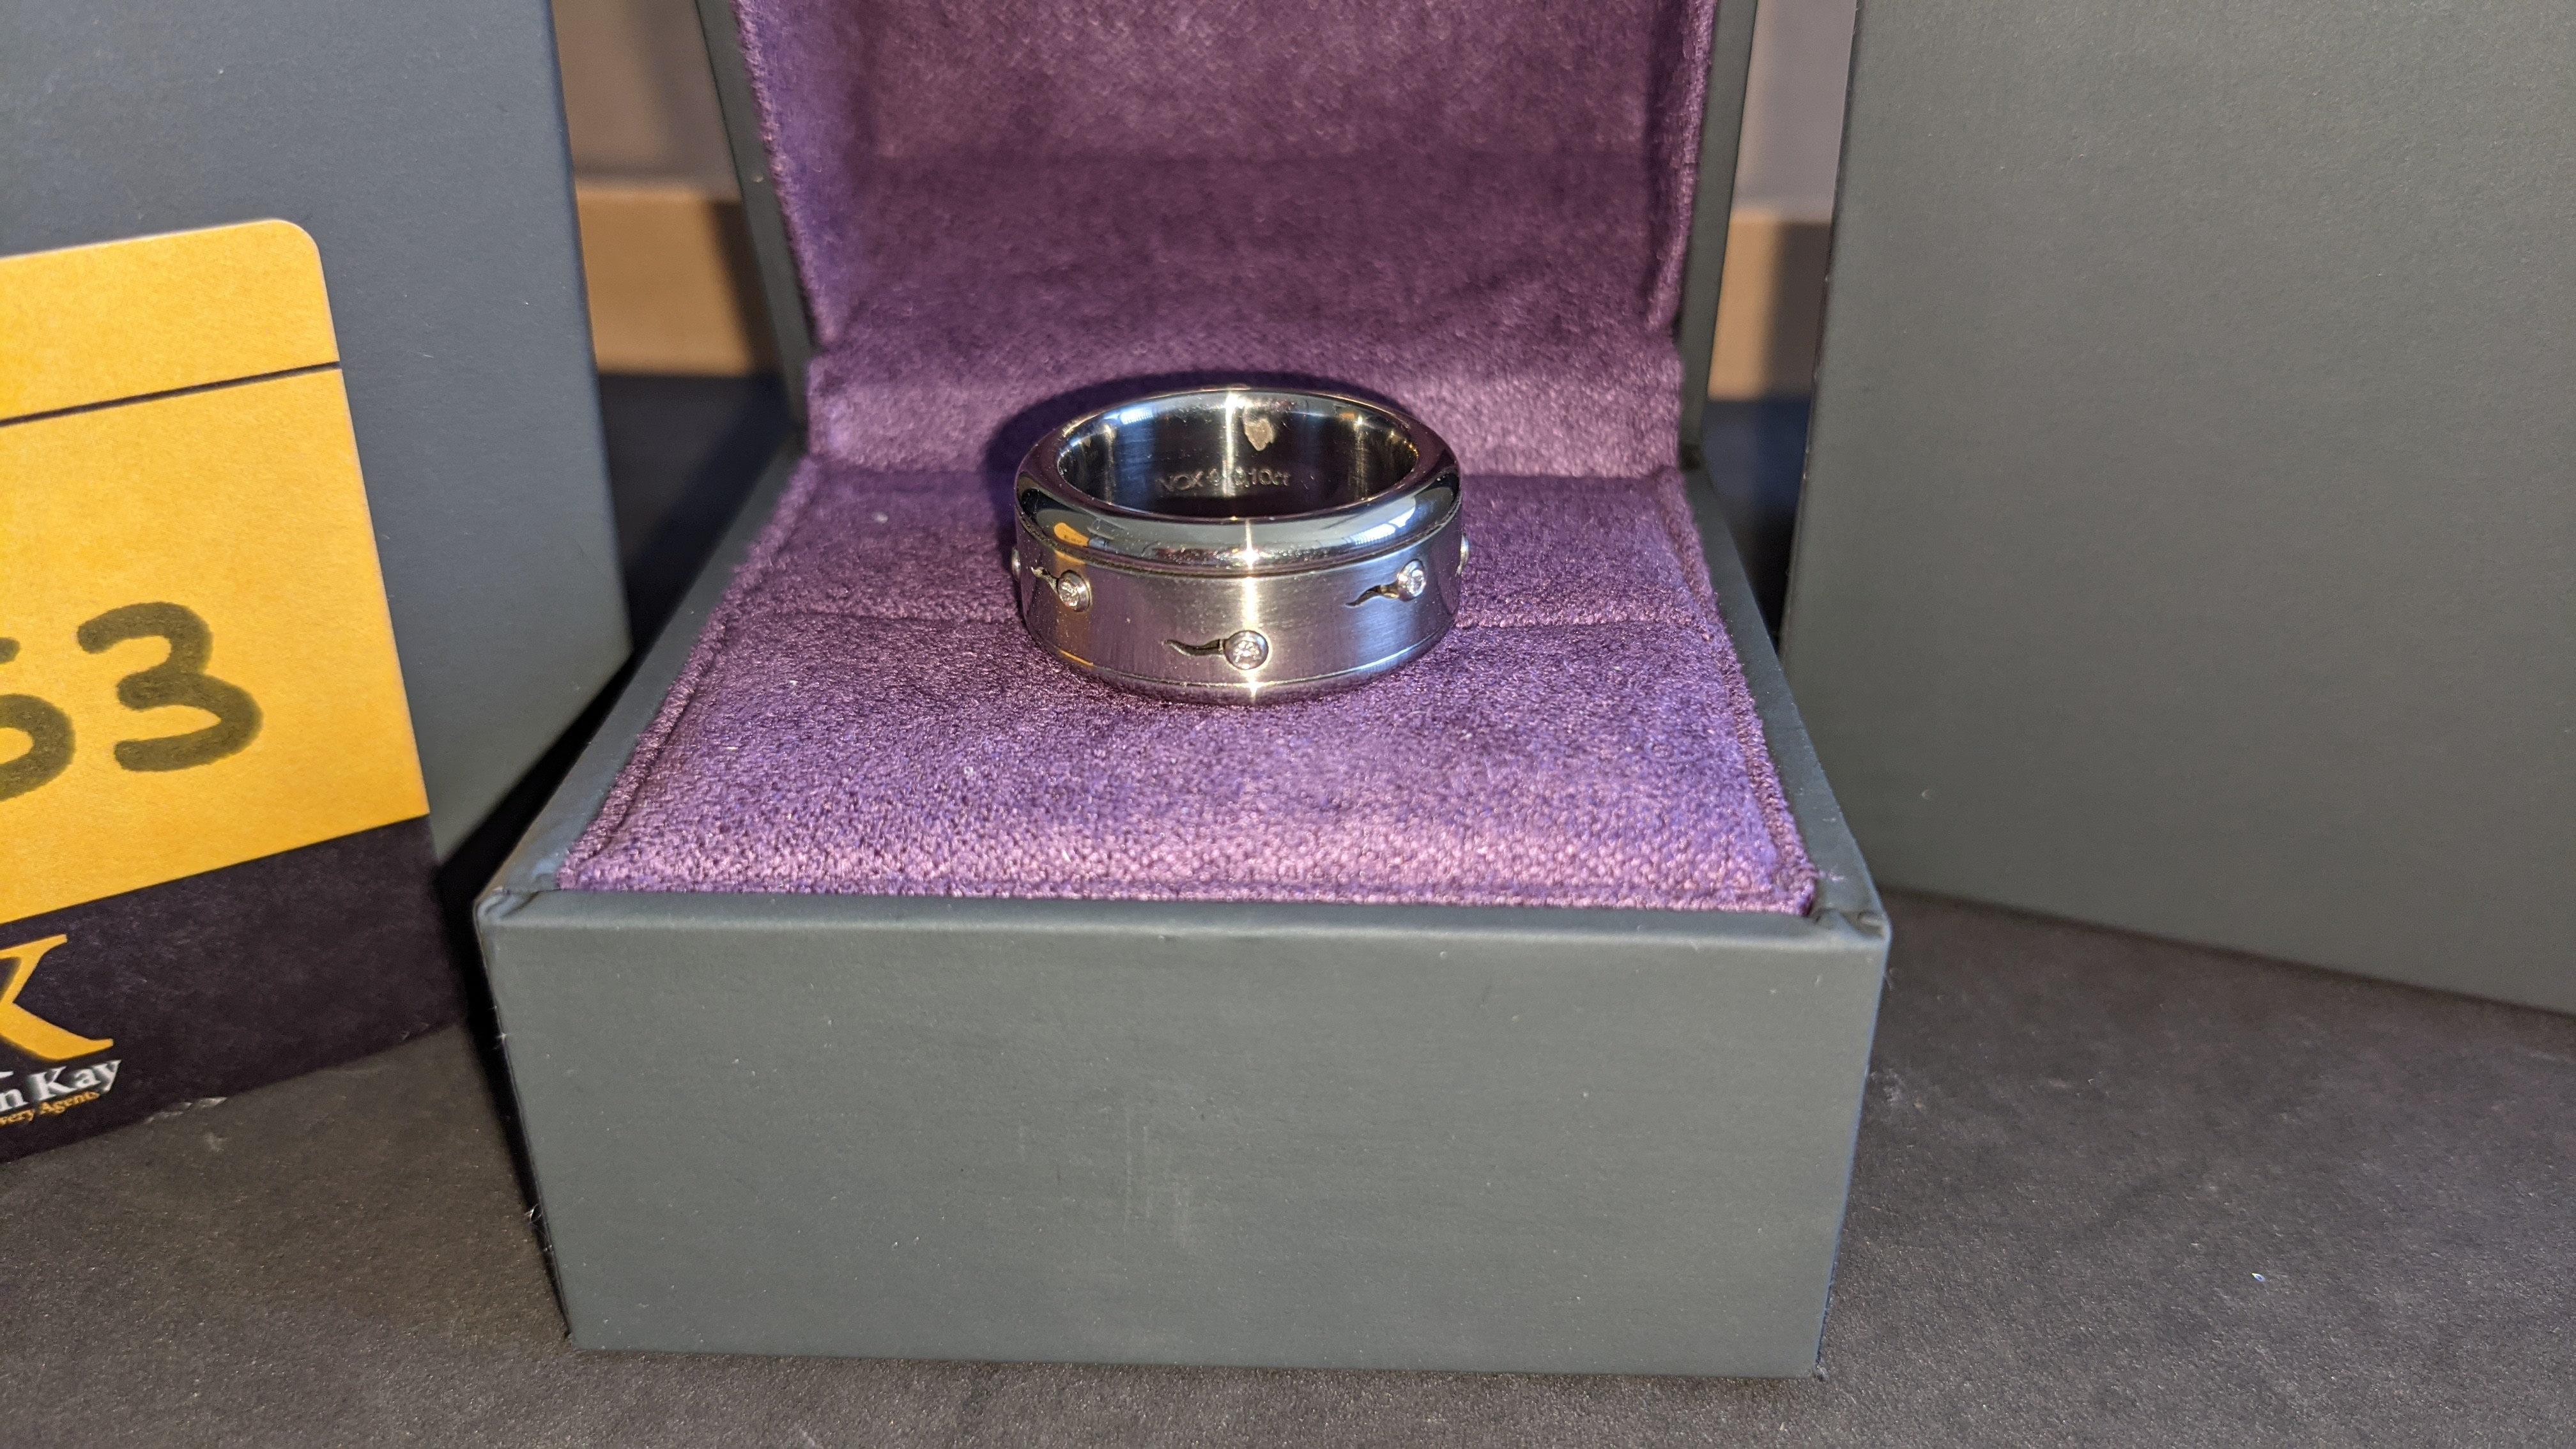 Stainless steel & diamond spin ring RRP £455 - Image 4 of 13